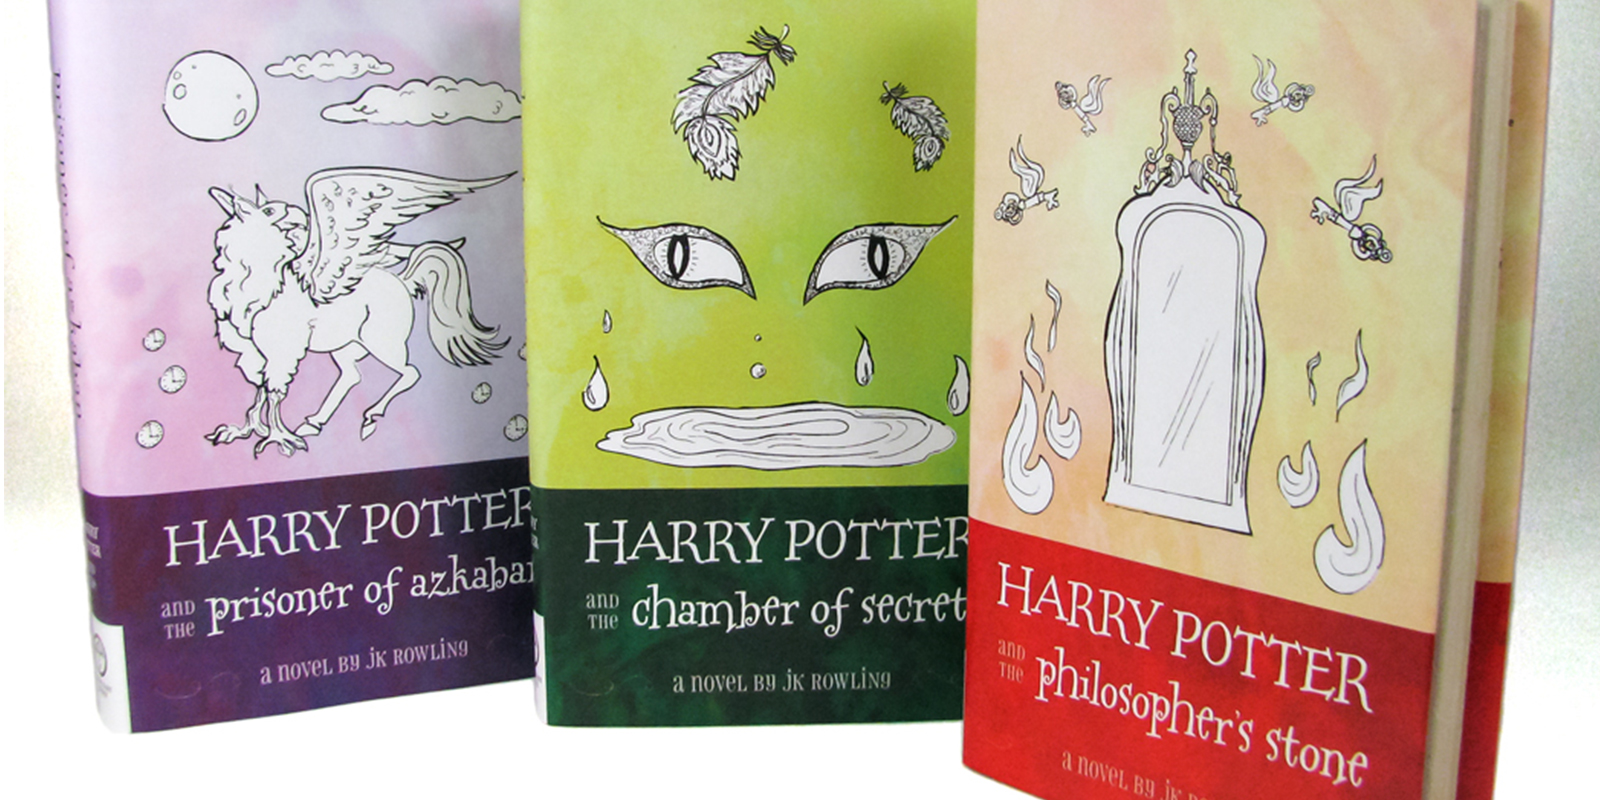 Harry-Potter-covers